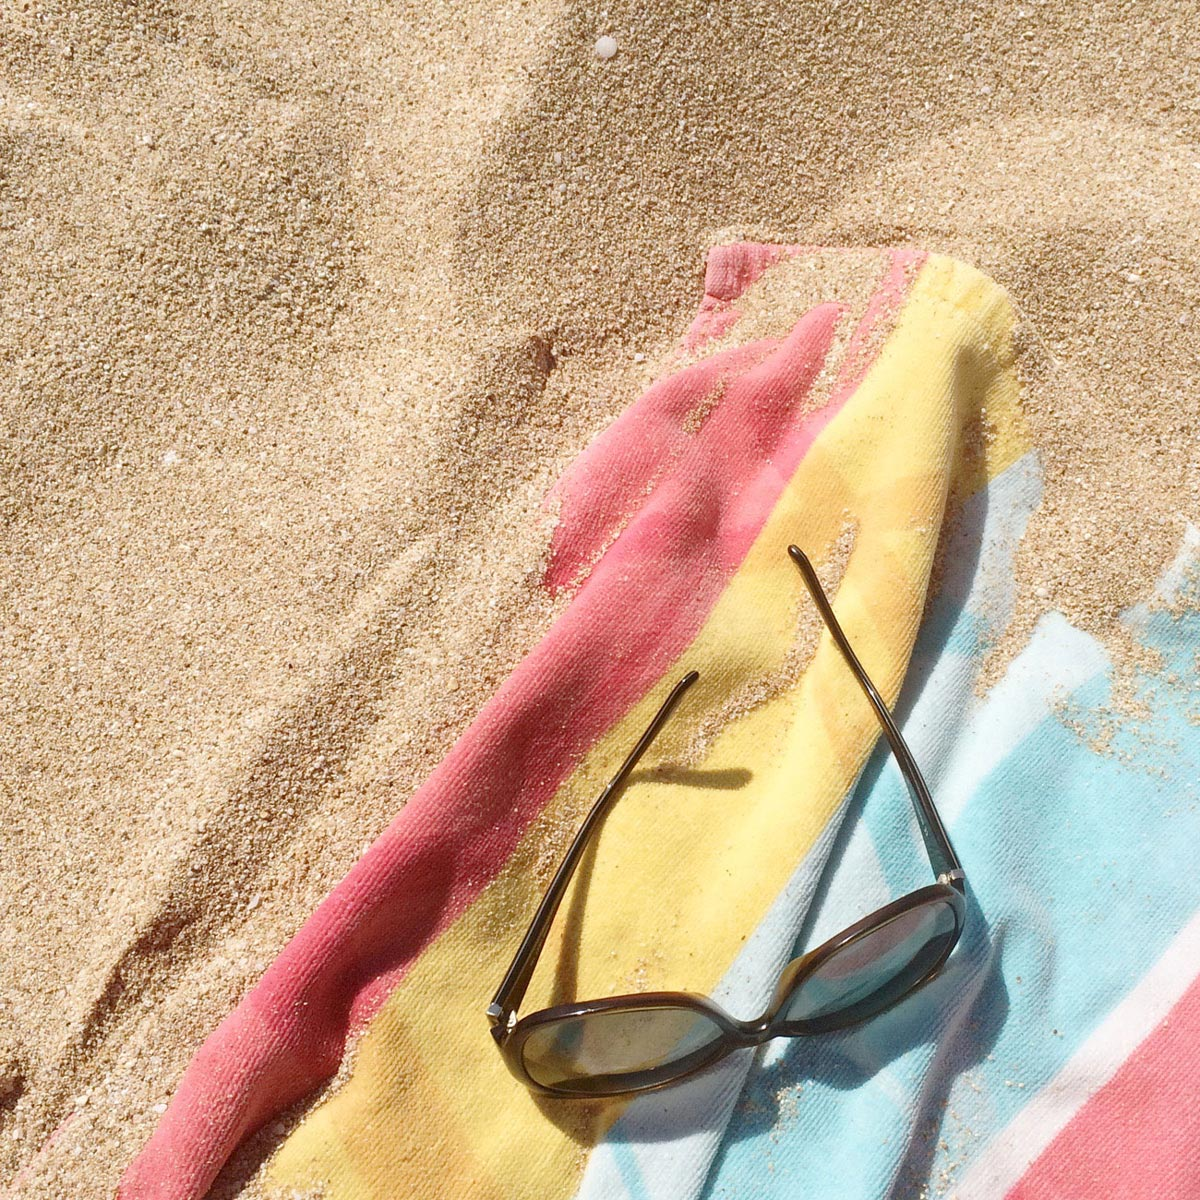 Photo by Stefanie Etow of beach towel and sunglasses at the bottom right corner of image